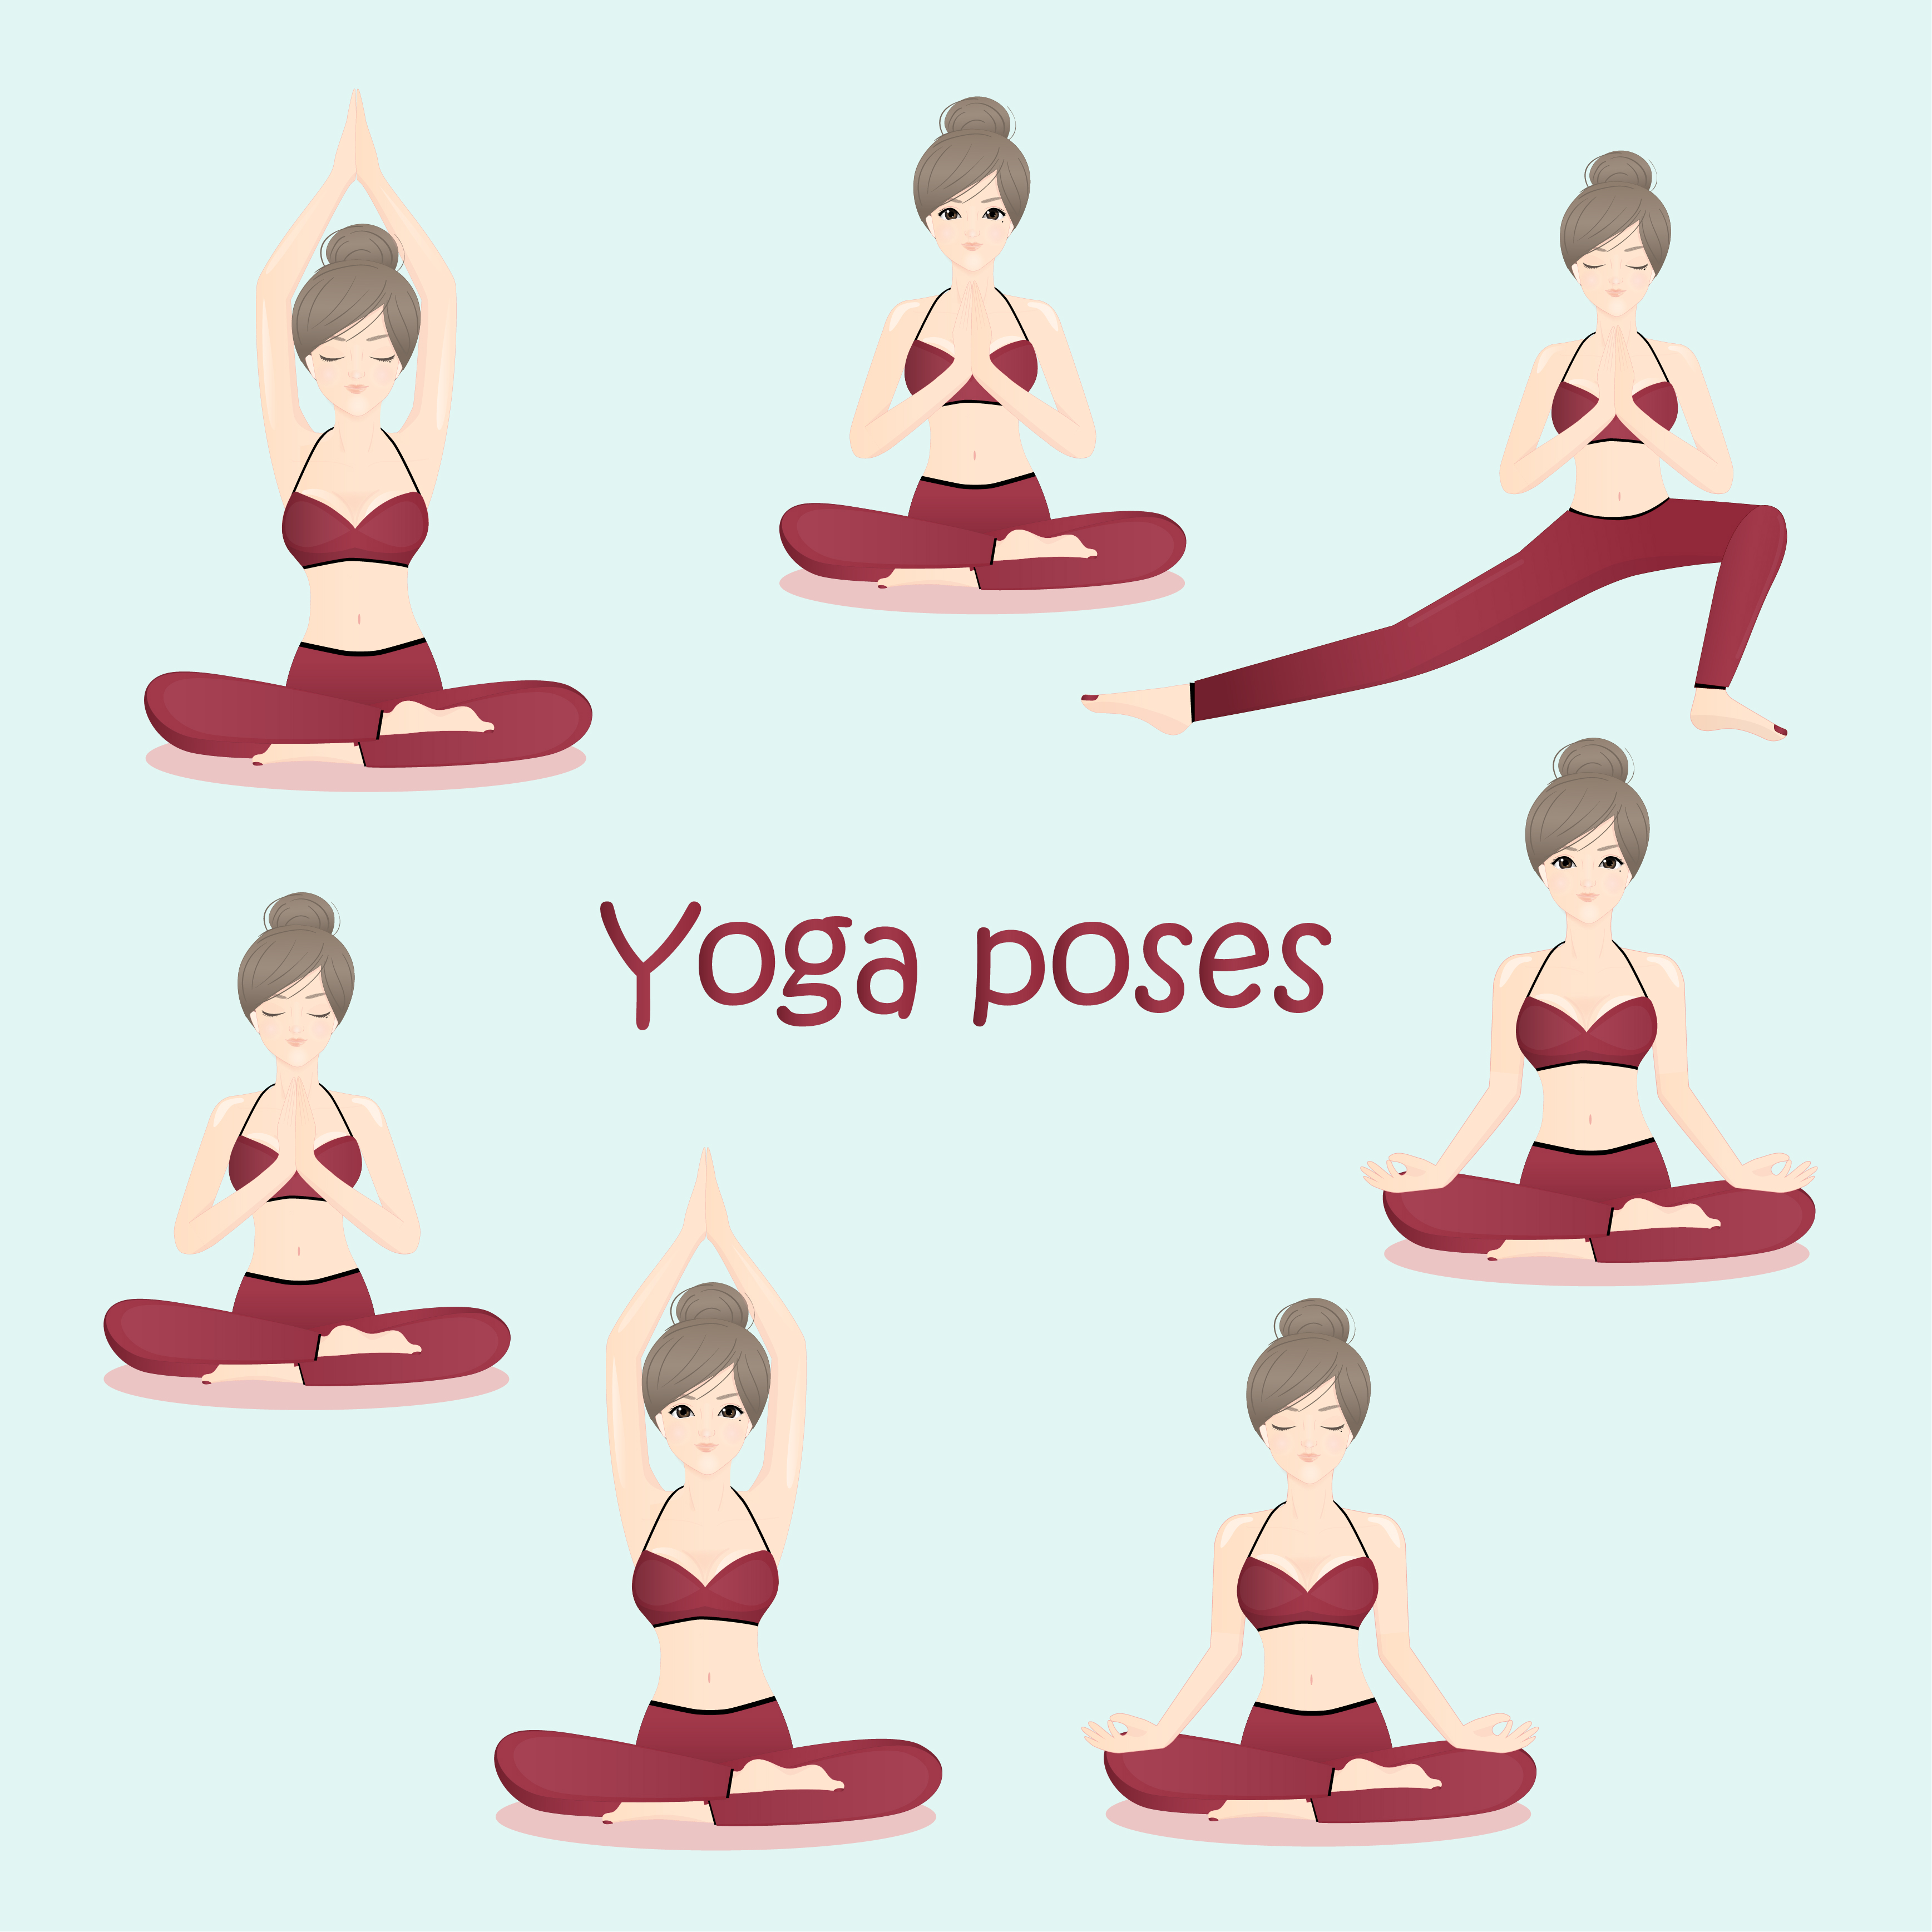 Fitness Woman Sitting In Yoga Posture Download Free Vectors Clipart Graphics Vector Art